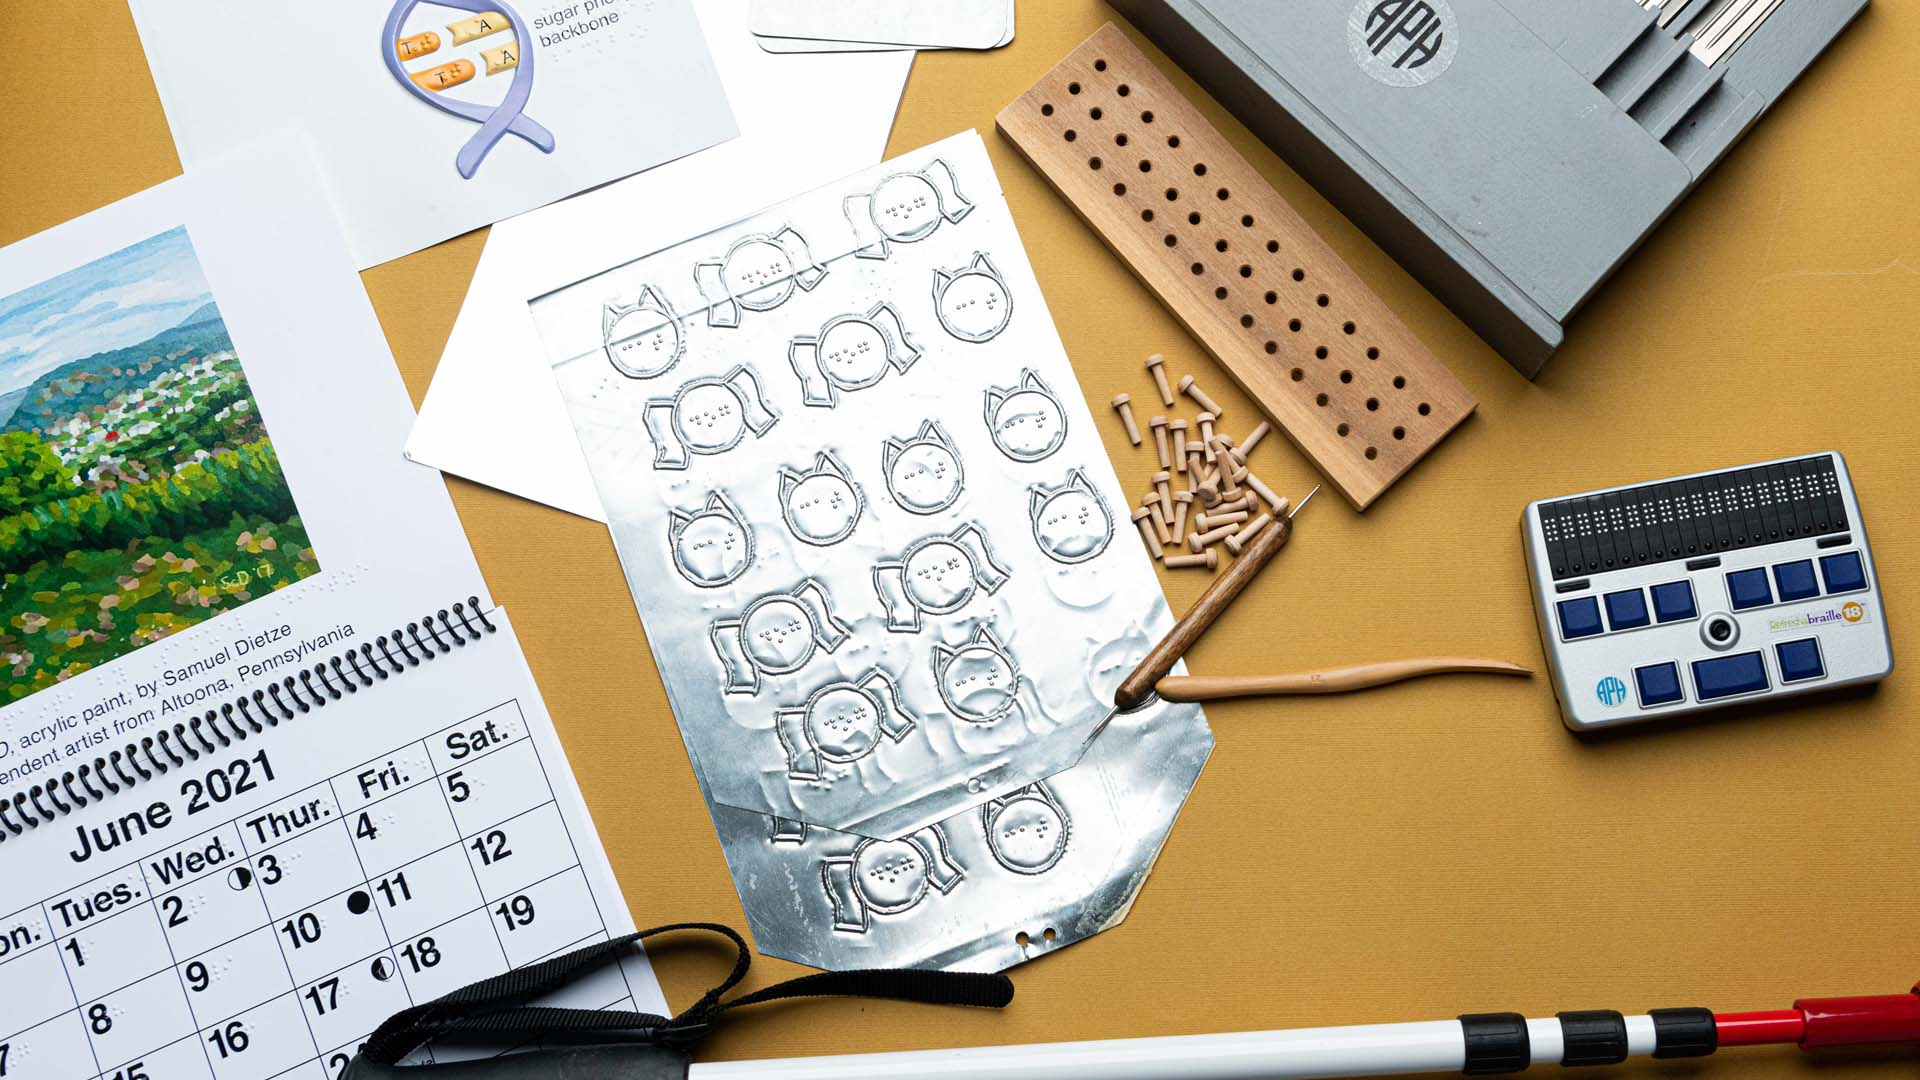 A metal embossing plate featuring cats and dogs, a print/braille calendar, a pegboard, a long cane, a refreshable braille display